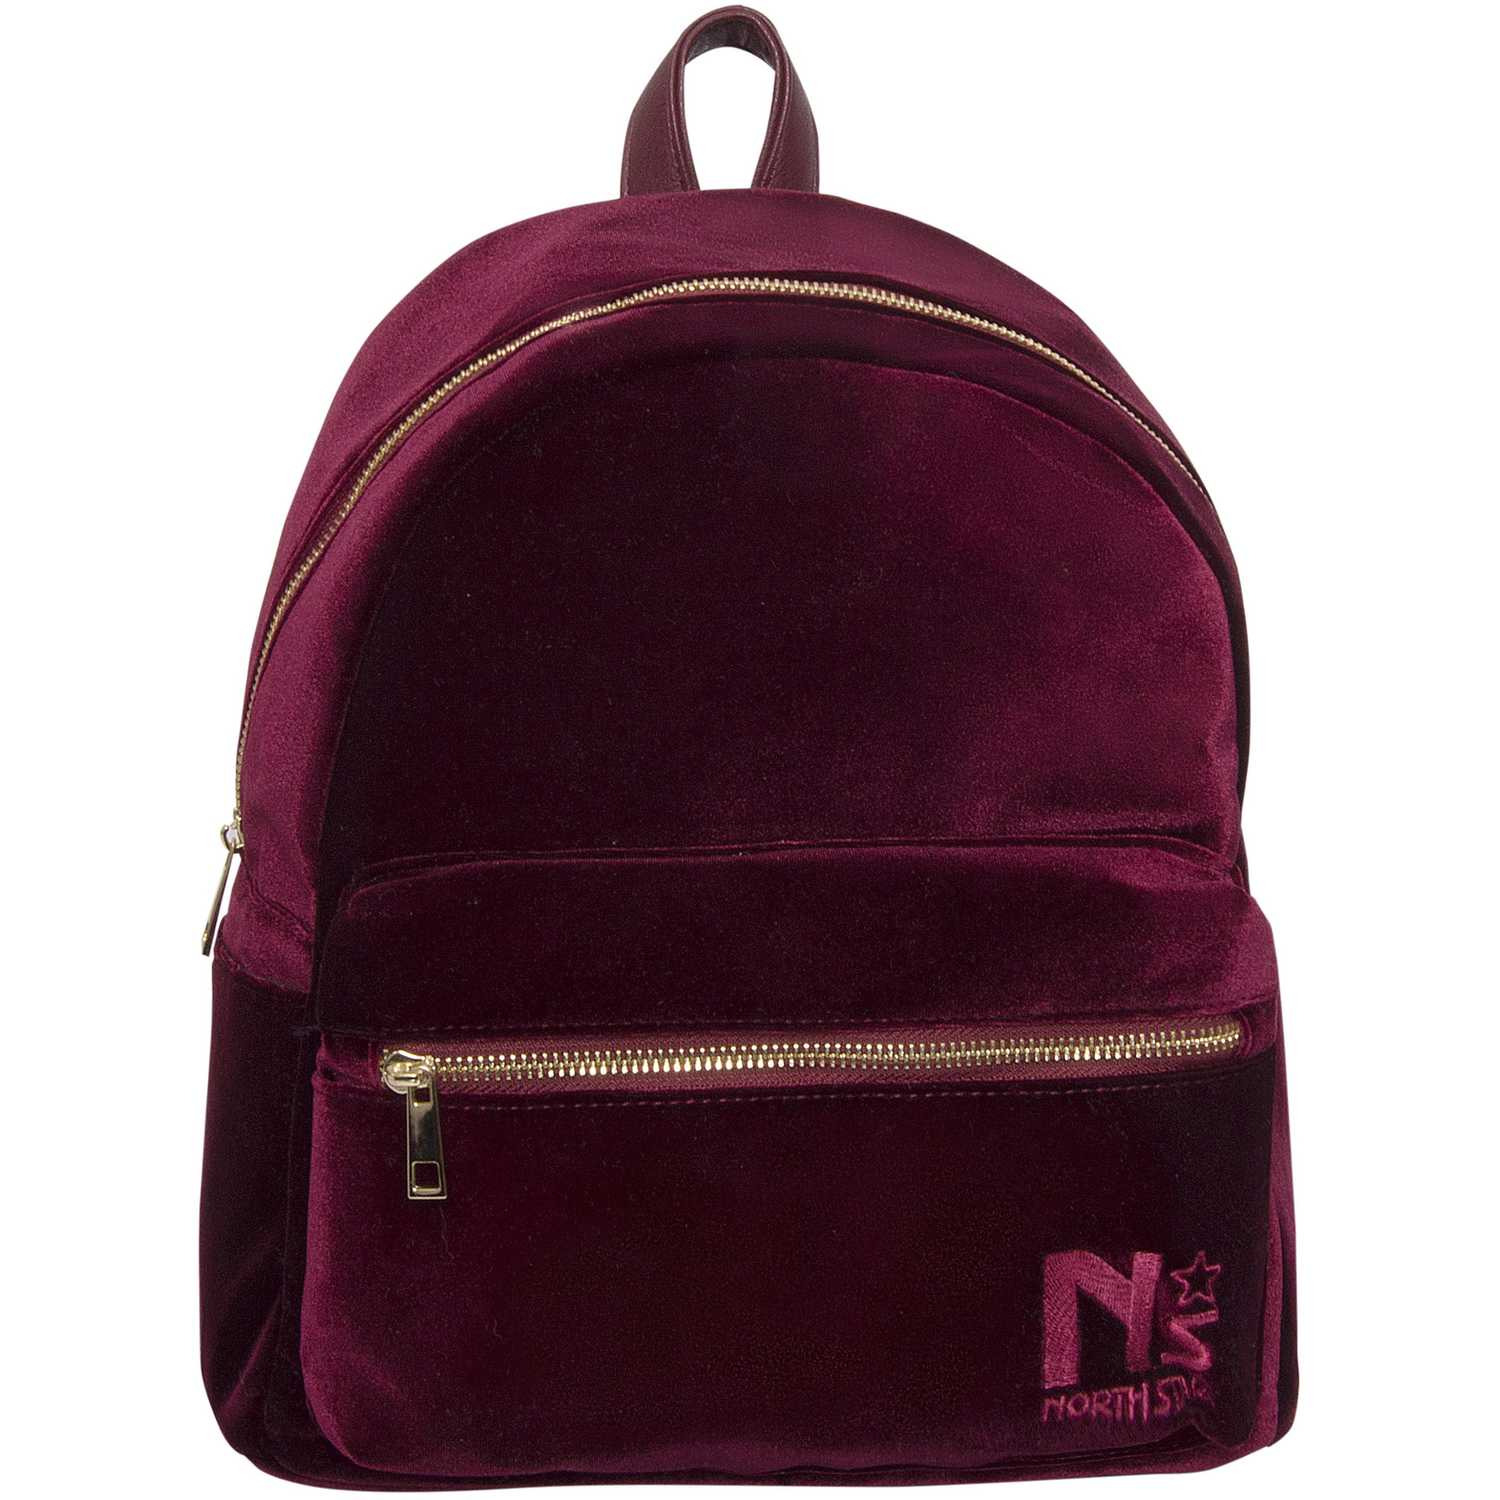 WEINBRENNER velvet Burgundy Mochilas Multipropósitos